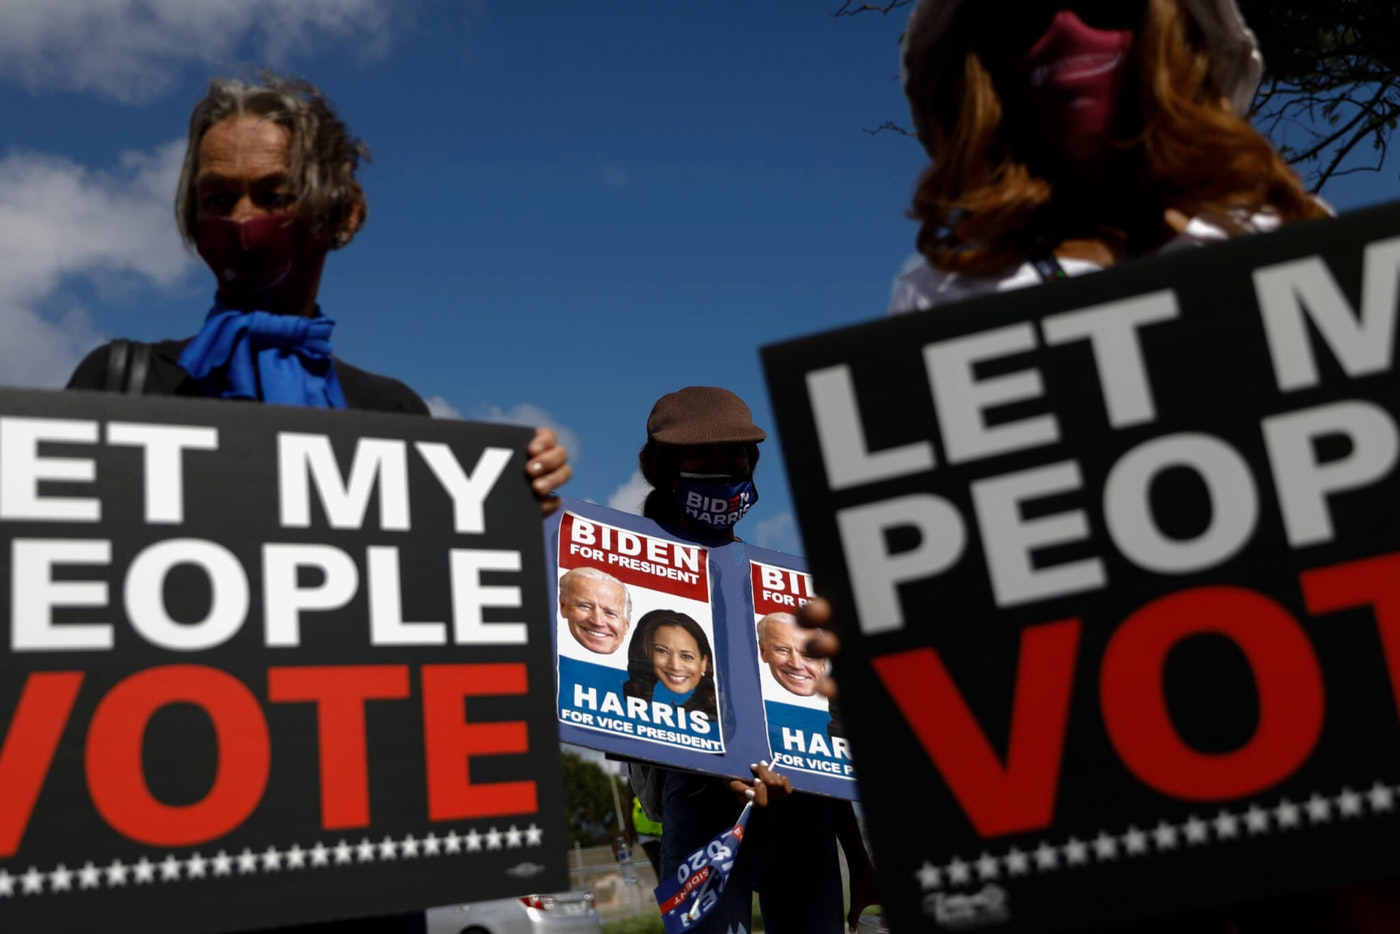 """FILE - In this Nov. 1, 2020, file photo, people carry signs supporting voting rights and former Vice President Joe Biden, during a """"Souls to the Polls"""" march in Model City, Miami. A tough road lies ahead for Biden who will need to chart a path forward to unite a bitterly divided nation and address America's fraught history of racism that manifested this year through the convergence of three national crises. (AP Photo/Rebecca Blackwell, File)"""